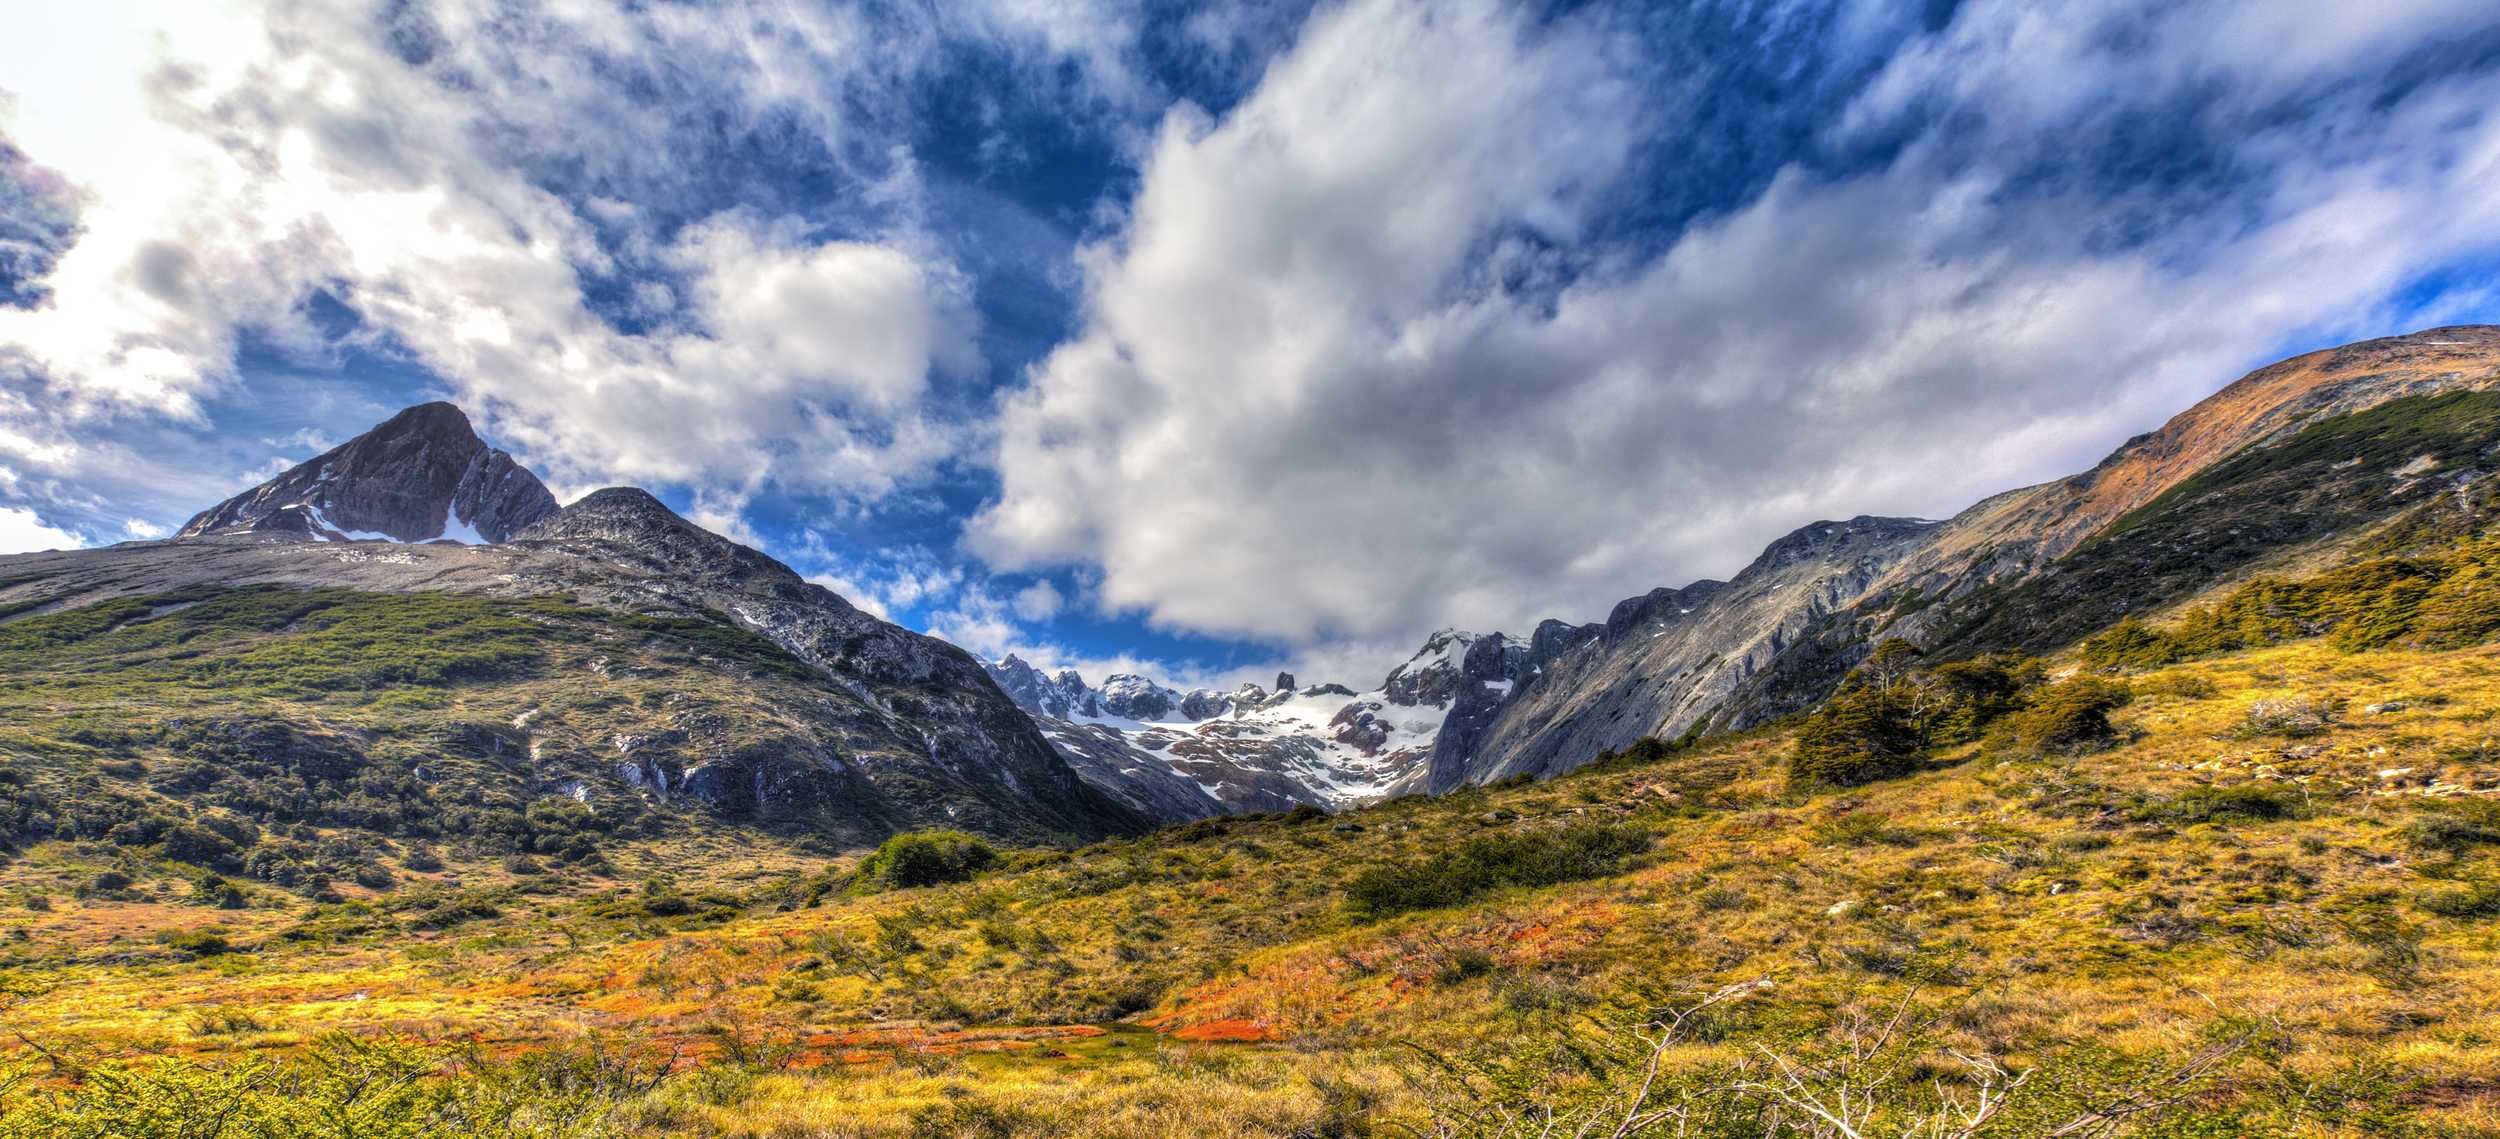 Hiking Through Tierra del Fuego